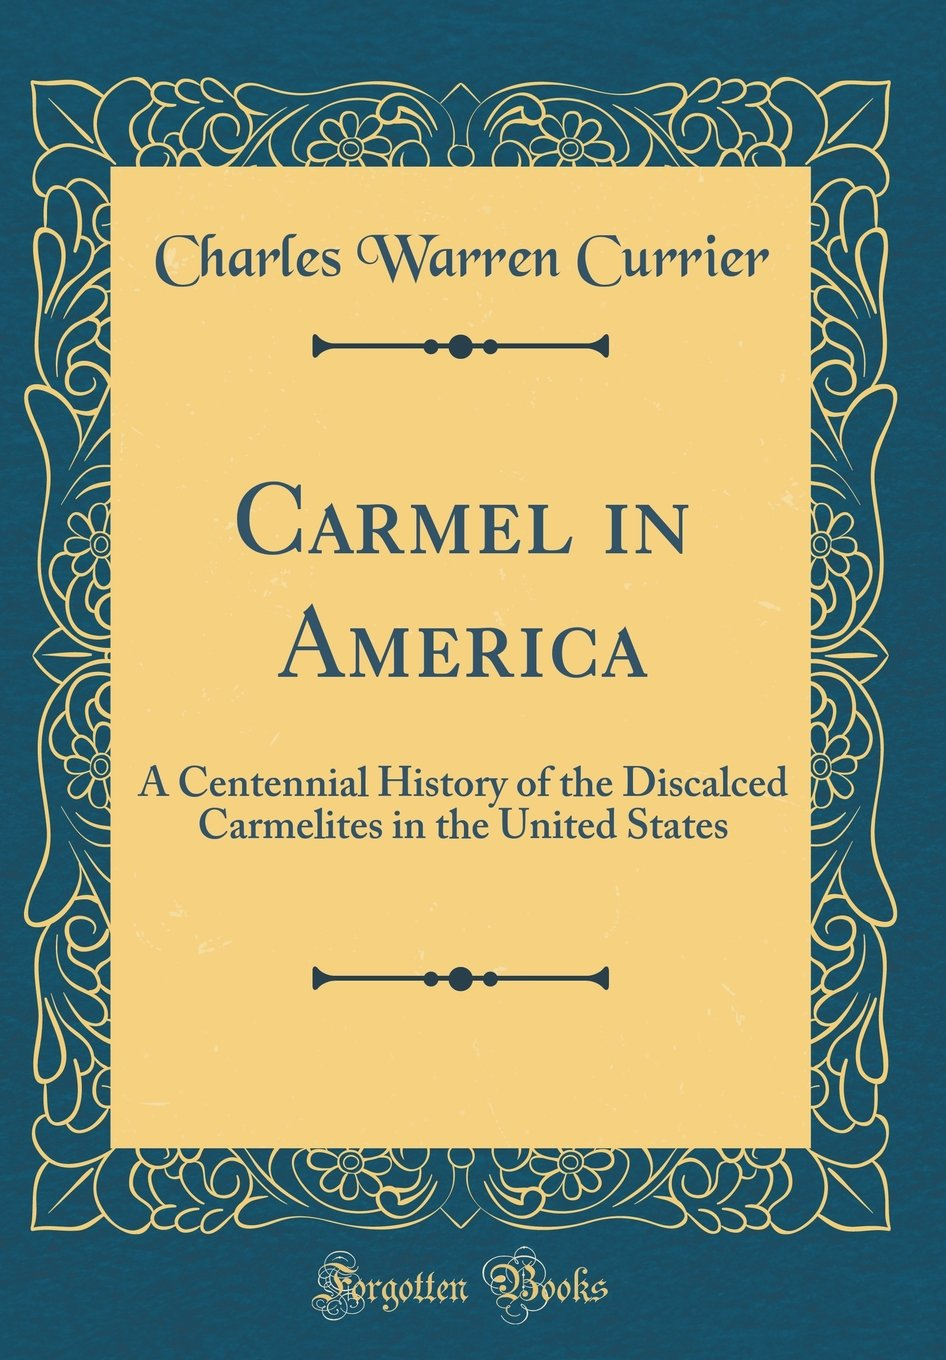 Carmel in America: A Centennial History of the Discalced Carmelites